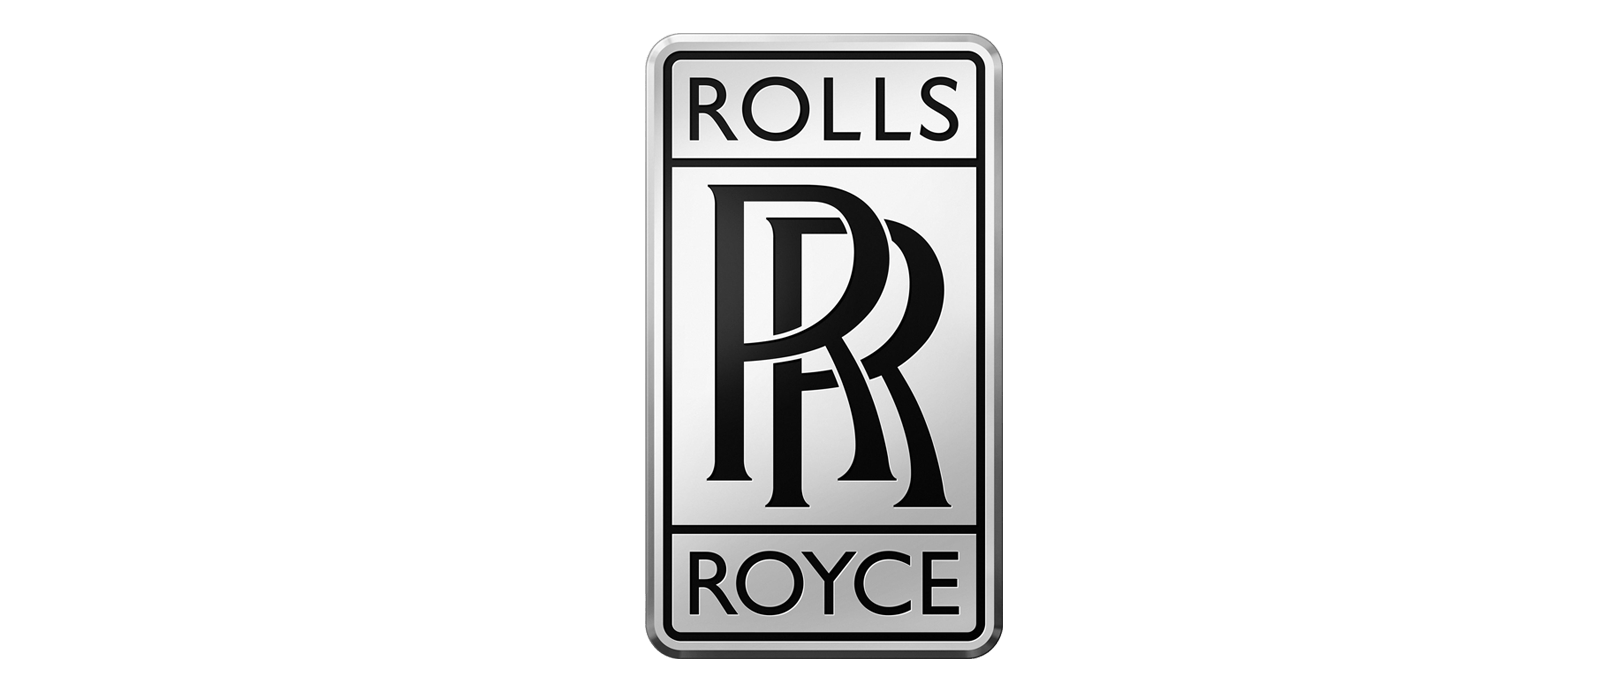 rolls royce logo logodix. Black Bedroom Furniture Sets. Home Design Ideas